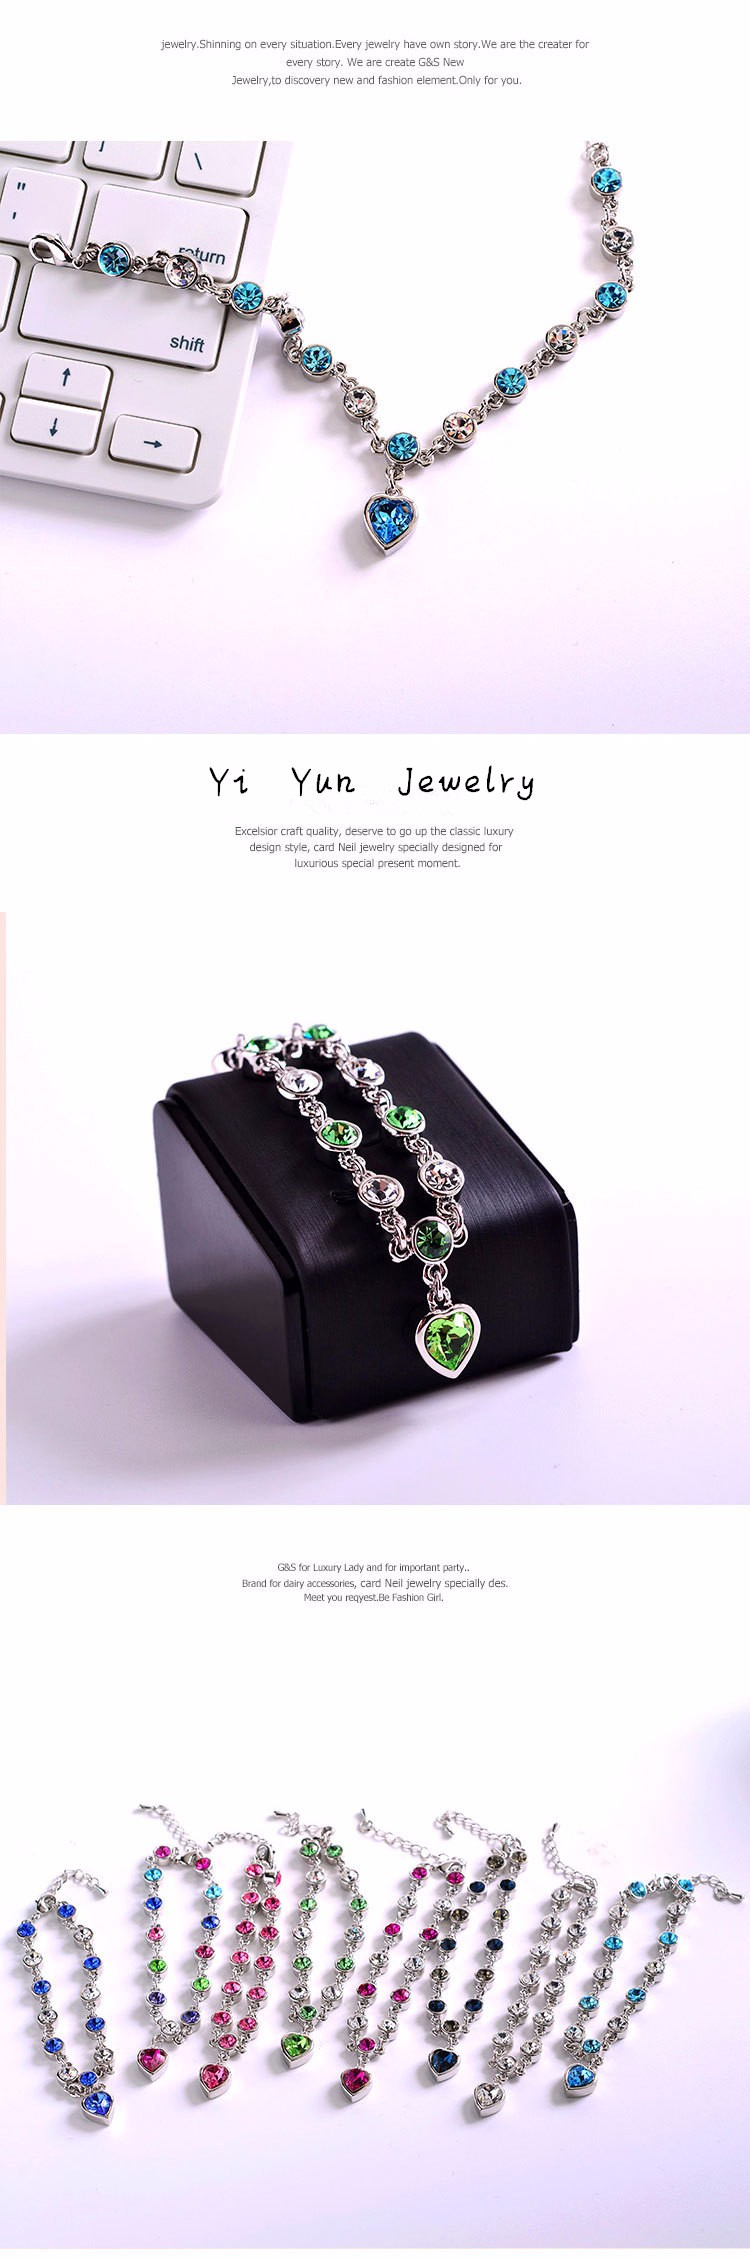 LYIYUNQ Fashion Bracelet Hot Wedding Female Heart Crystal Bracelets For Women Luxury Temperament Silver-Color Fine Jewelry Gift 10